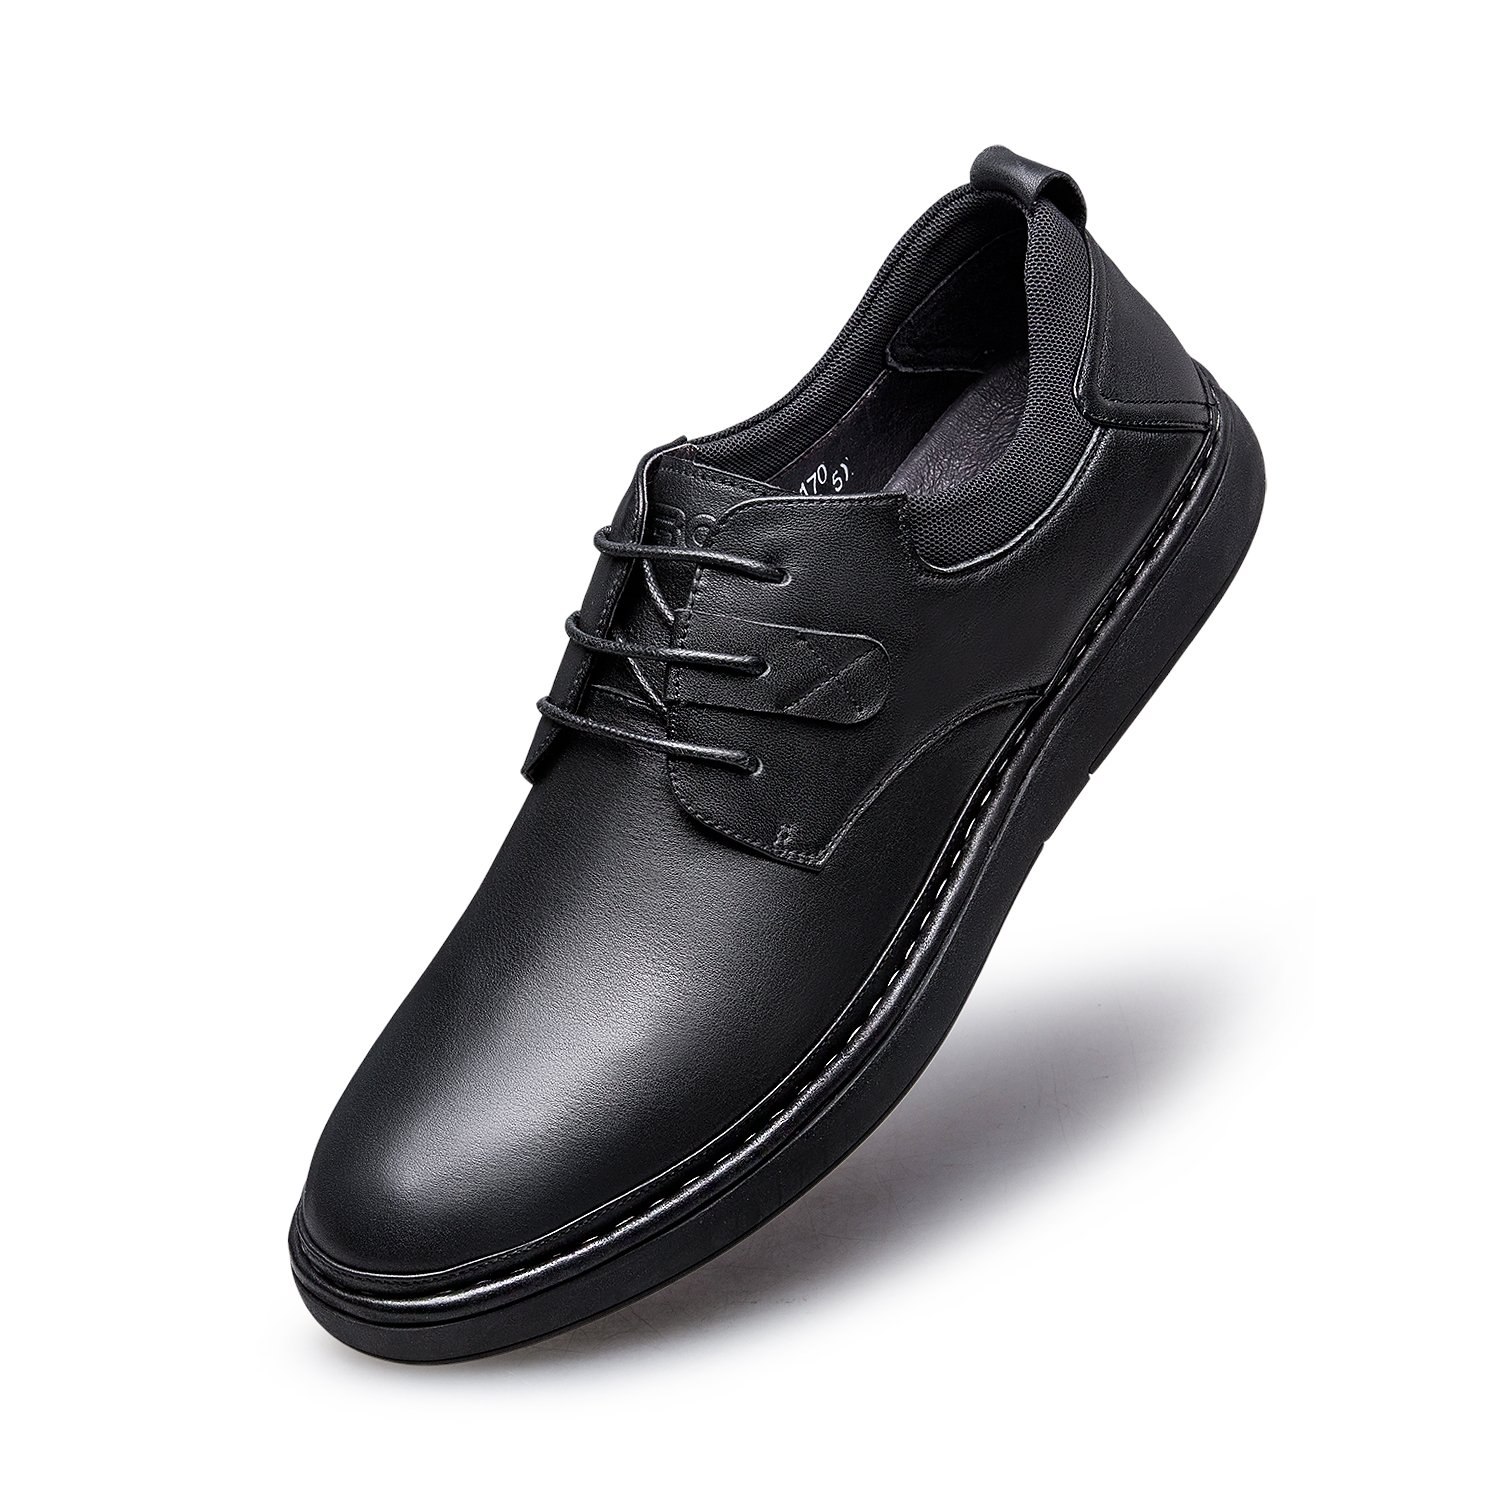 ZRO Men's Classic Fashion Casual Lace Up Oxfords Shoes Black US 9.5